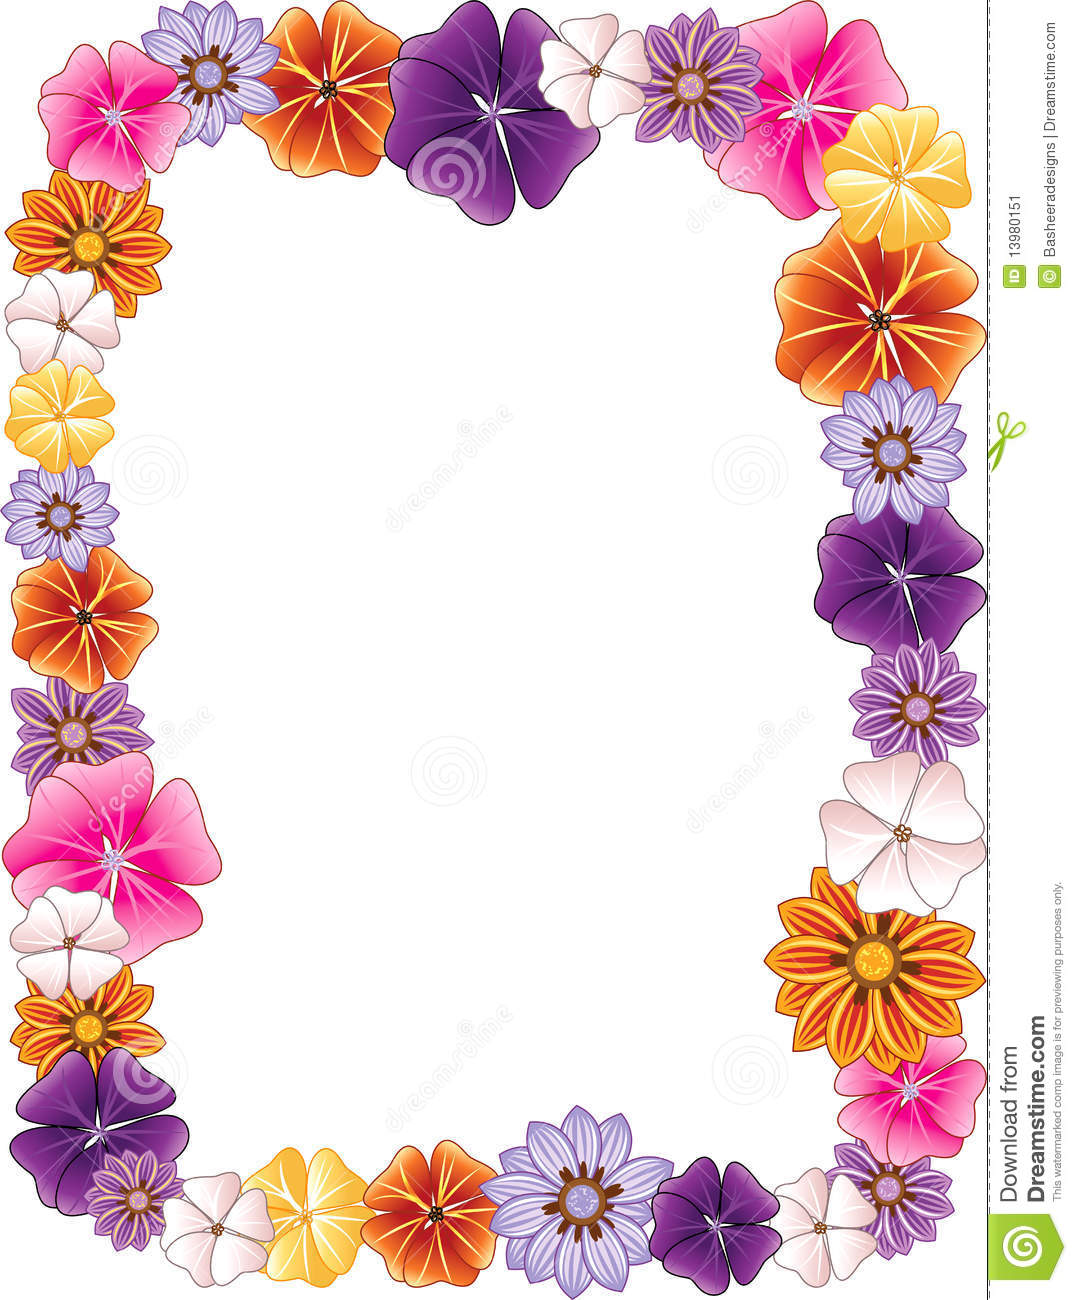 Orange Flower clipart flower bottom border Flower Free Panda Images hawaiian%20flower%20border%20clip%20art